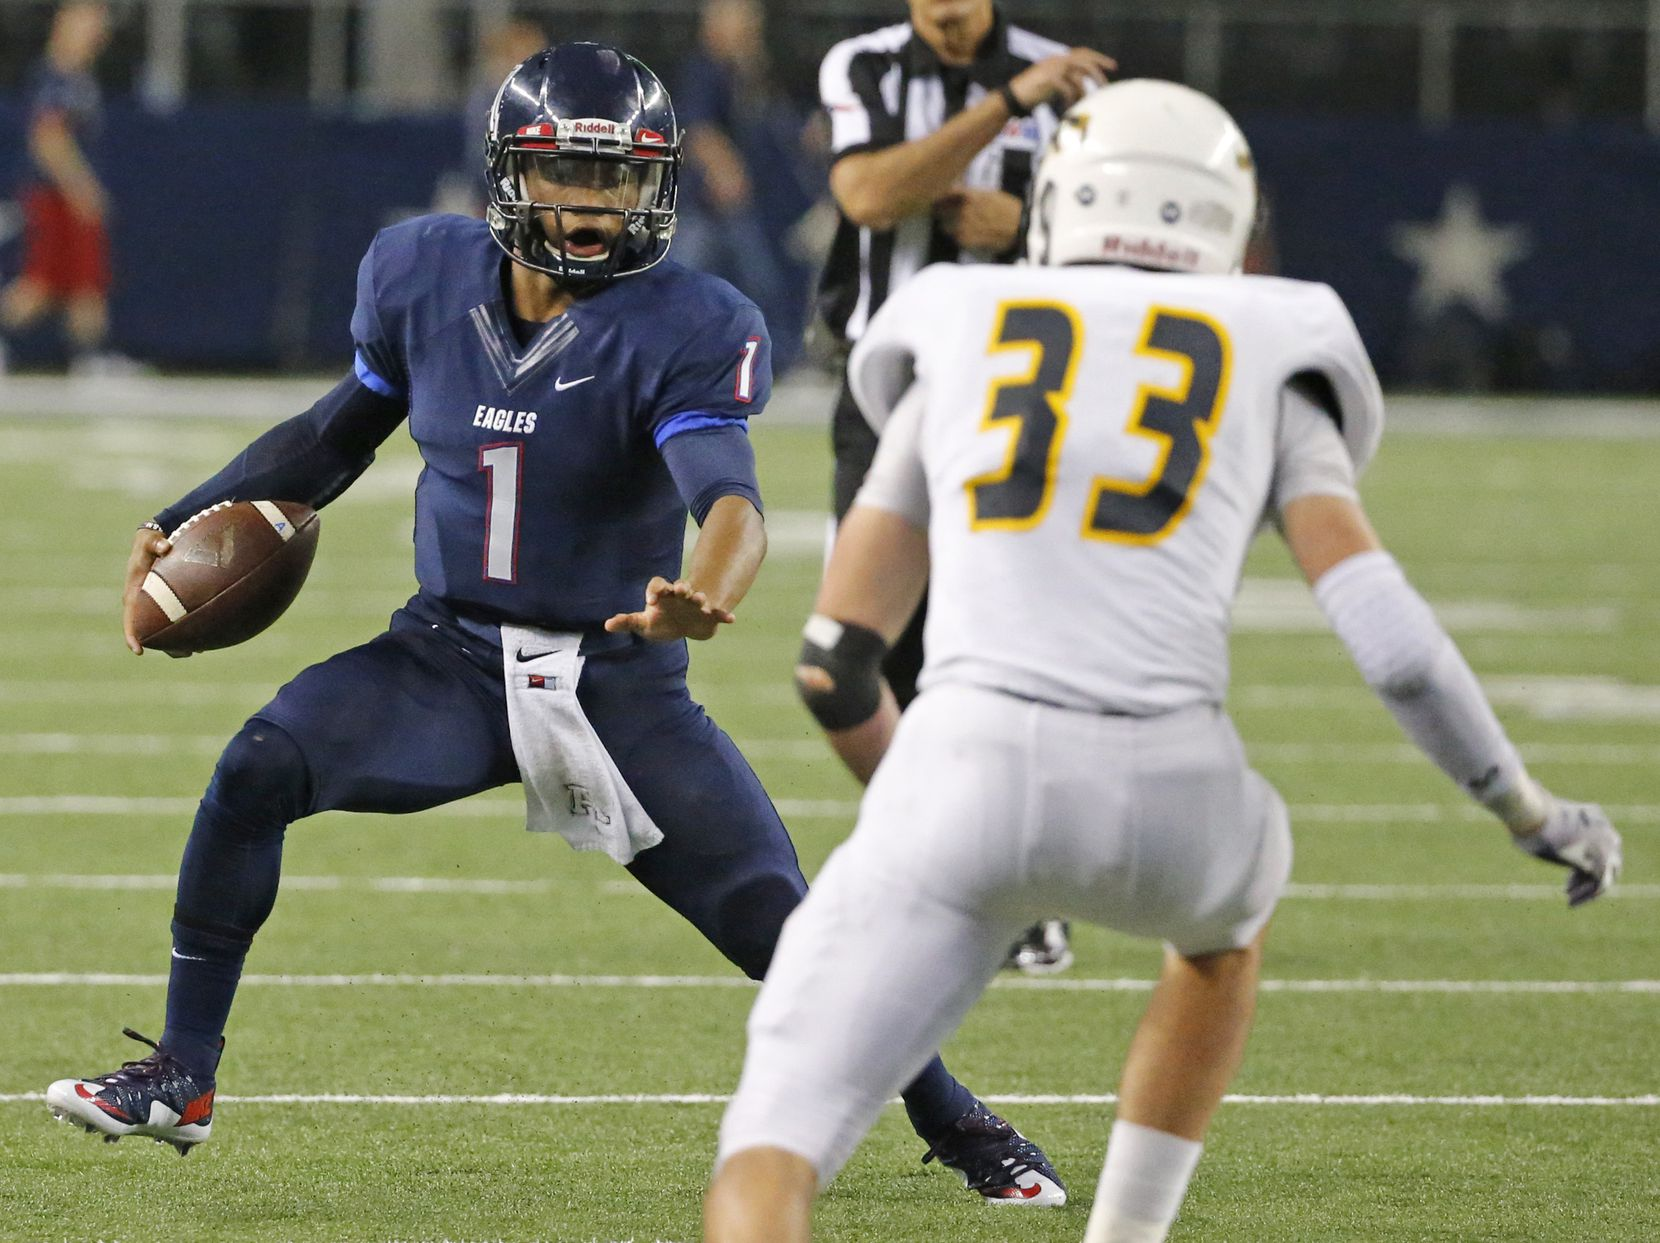 FILE - Allen quarterback Kyler Murray (1) scrambles away from Cypress Ranch's Brayden Stringer during the Class 6A, Div. I state championship game at AT&T Stadium in Arlington on Saturday, Dec. 20, 2014.